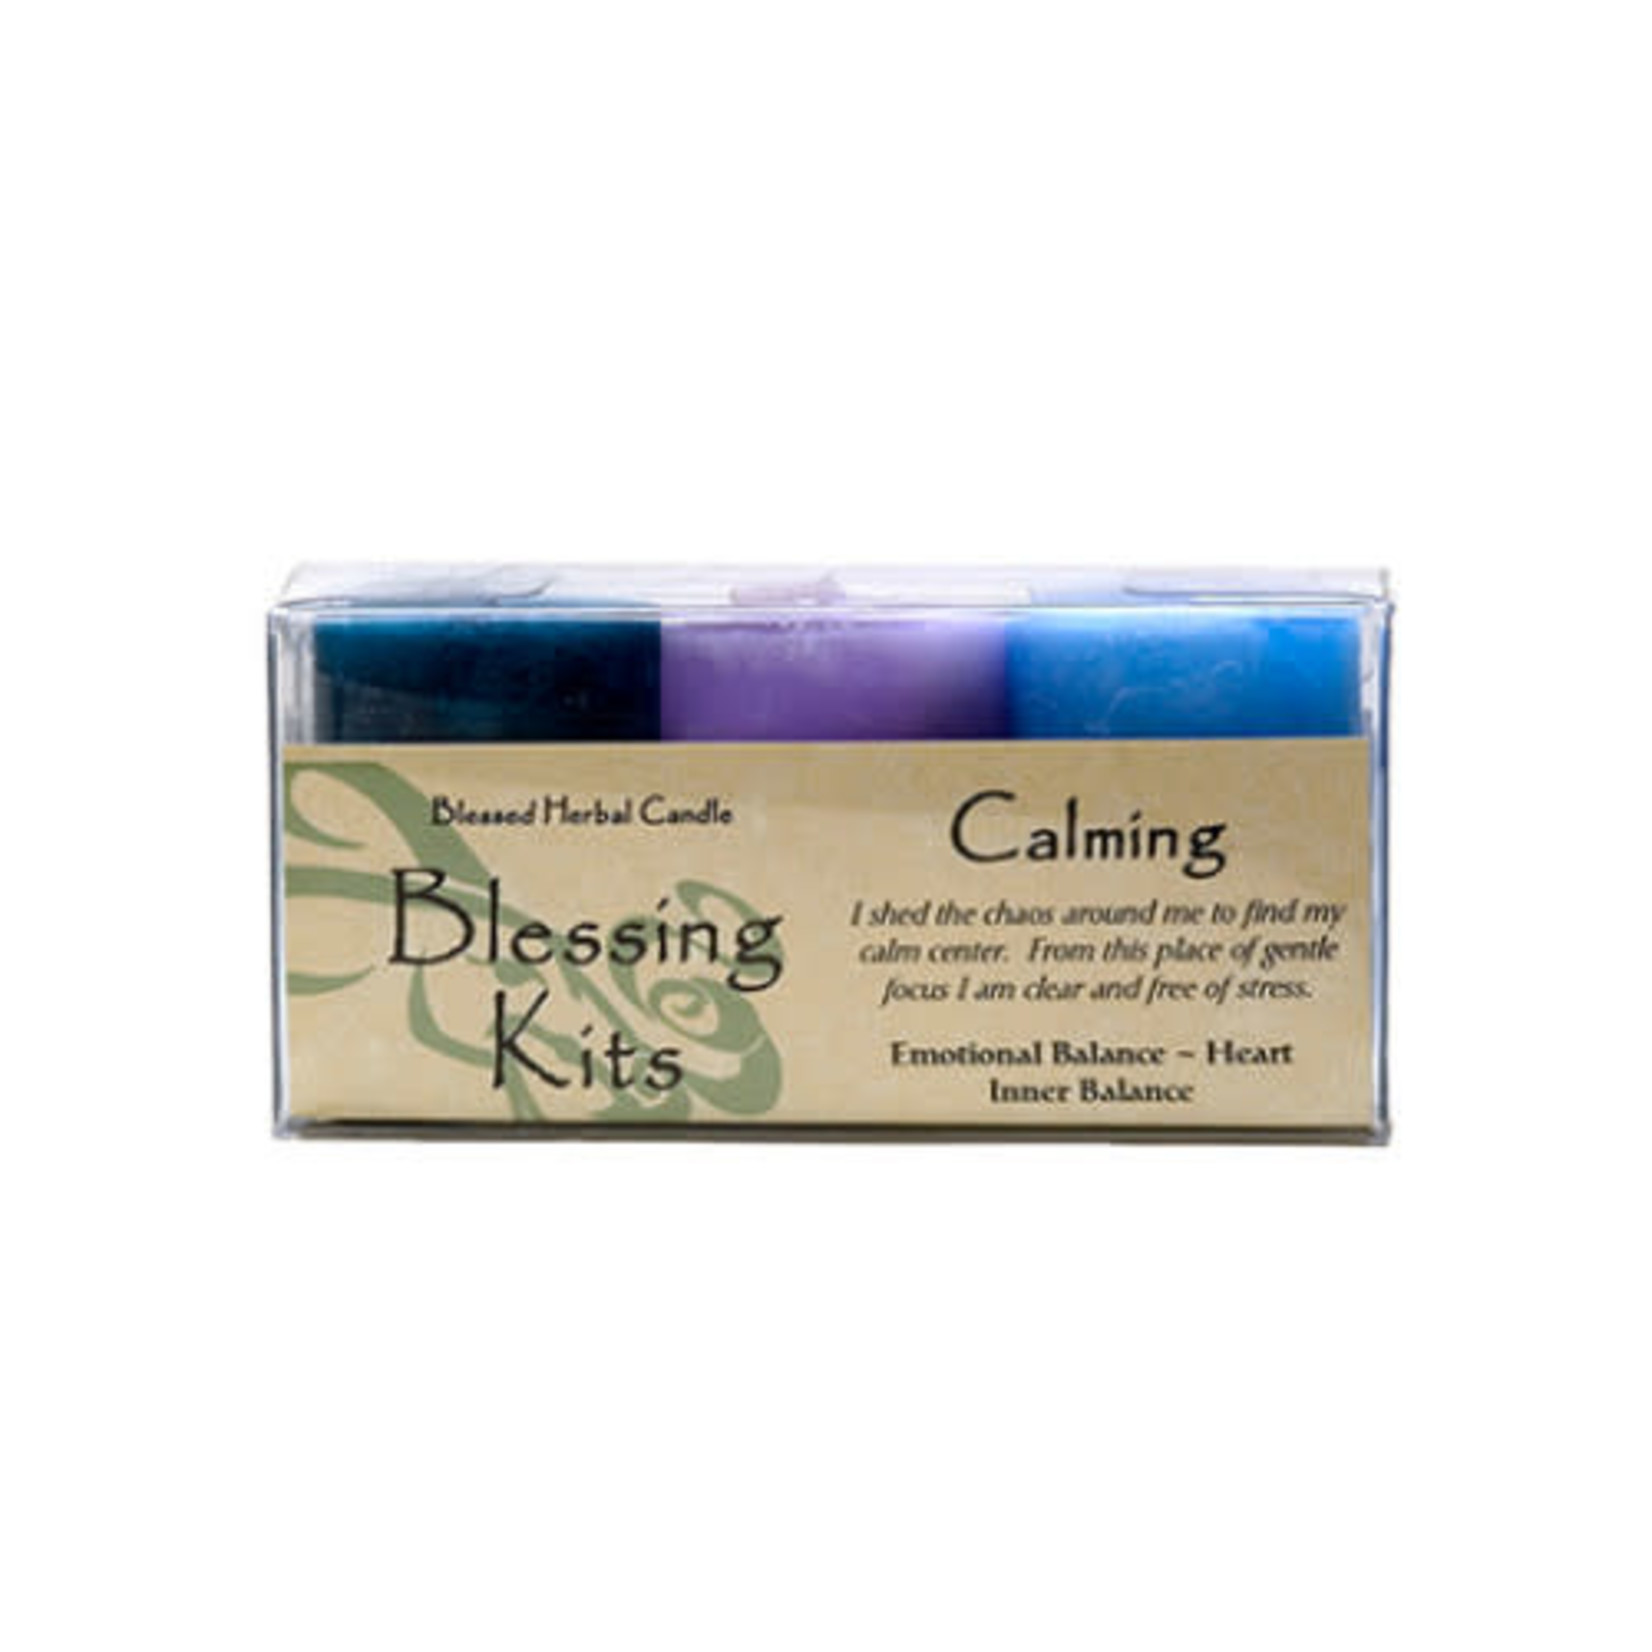 Blessed Kit Herbal Calming Candle Kit